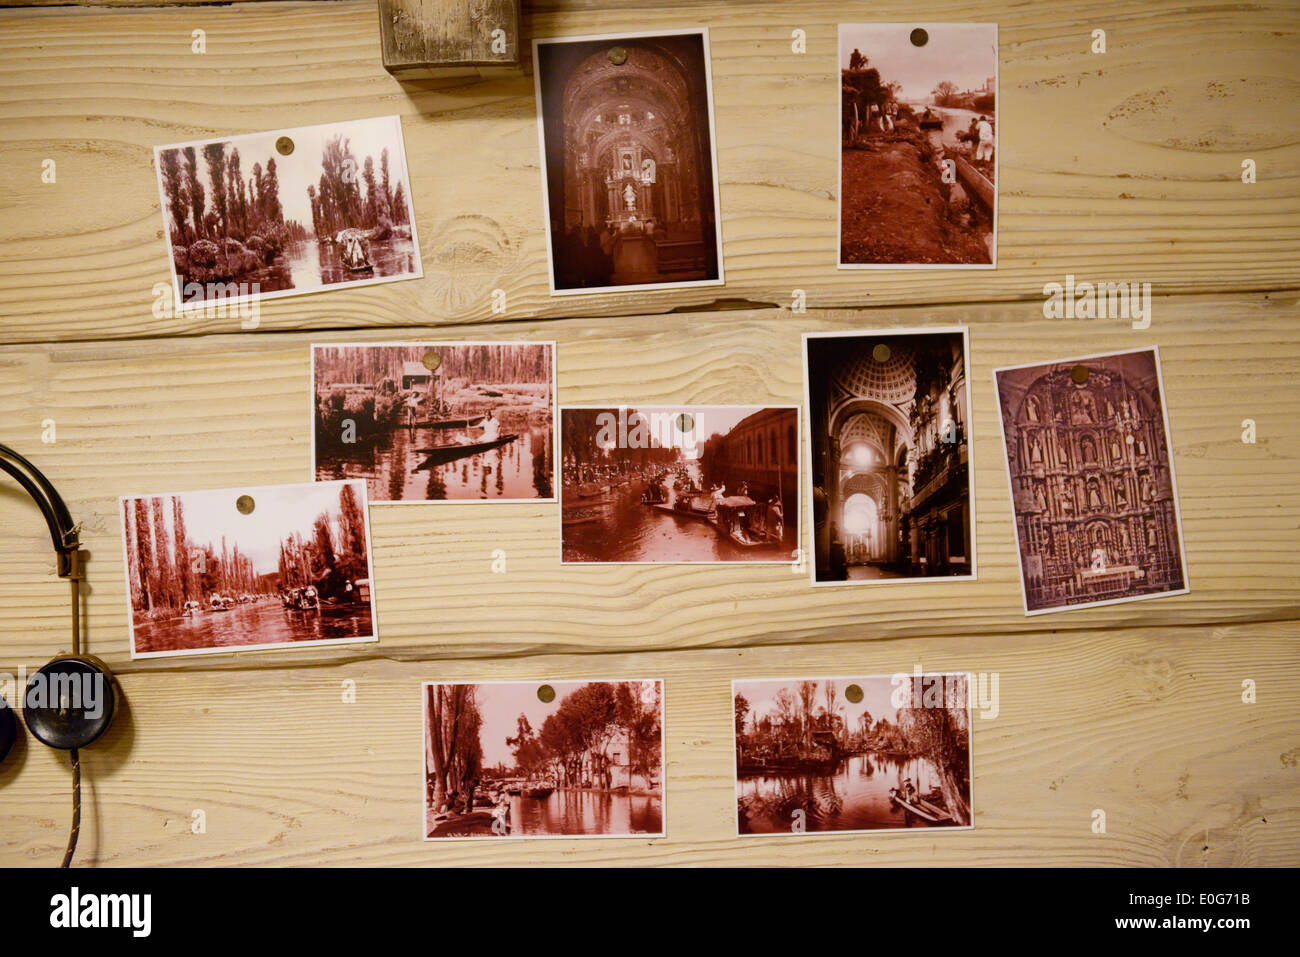 Vintage photographs pinned to a wooden wall - Stock Image